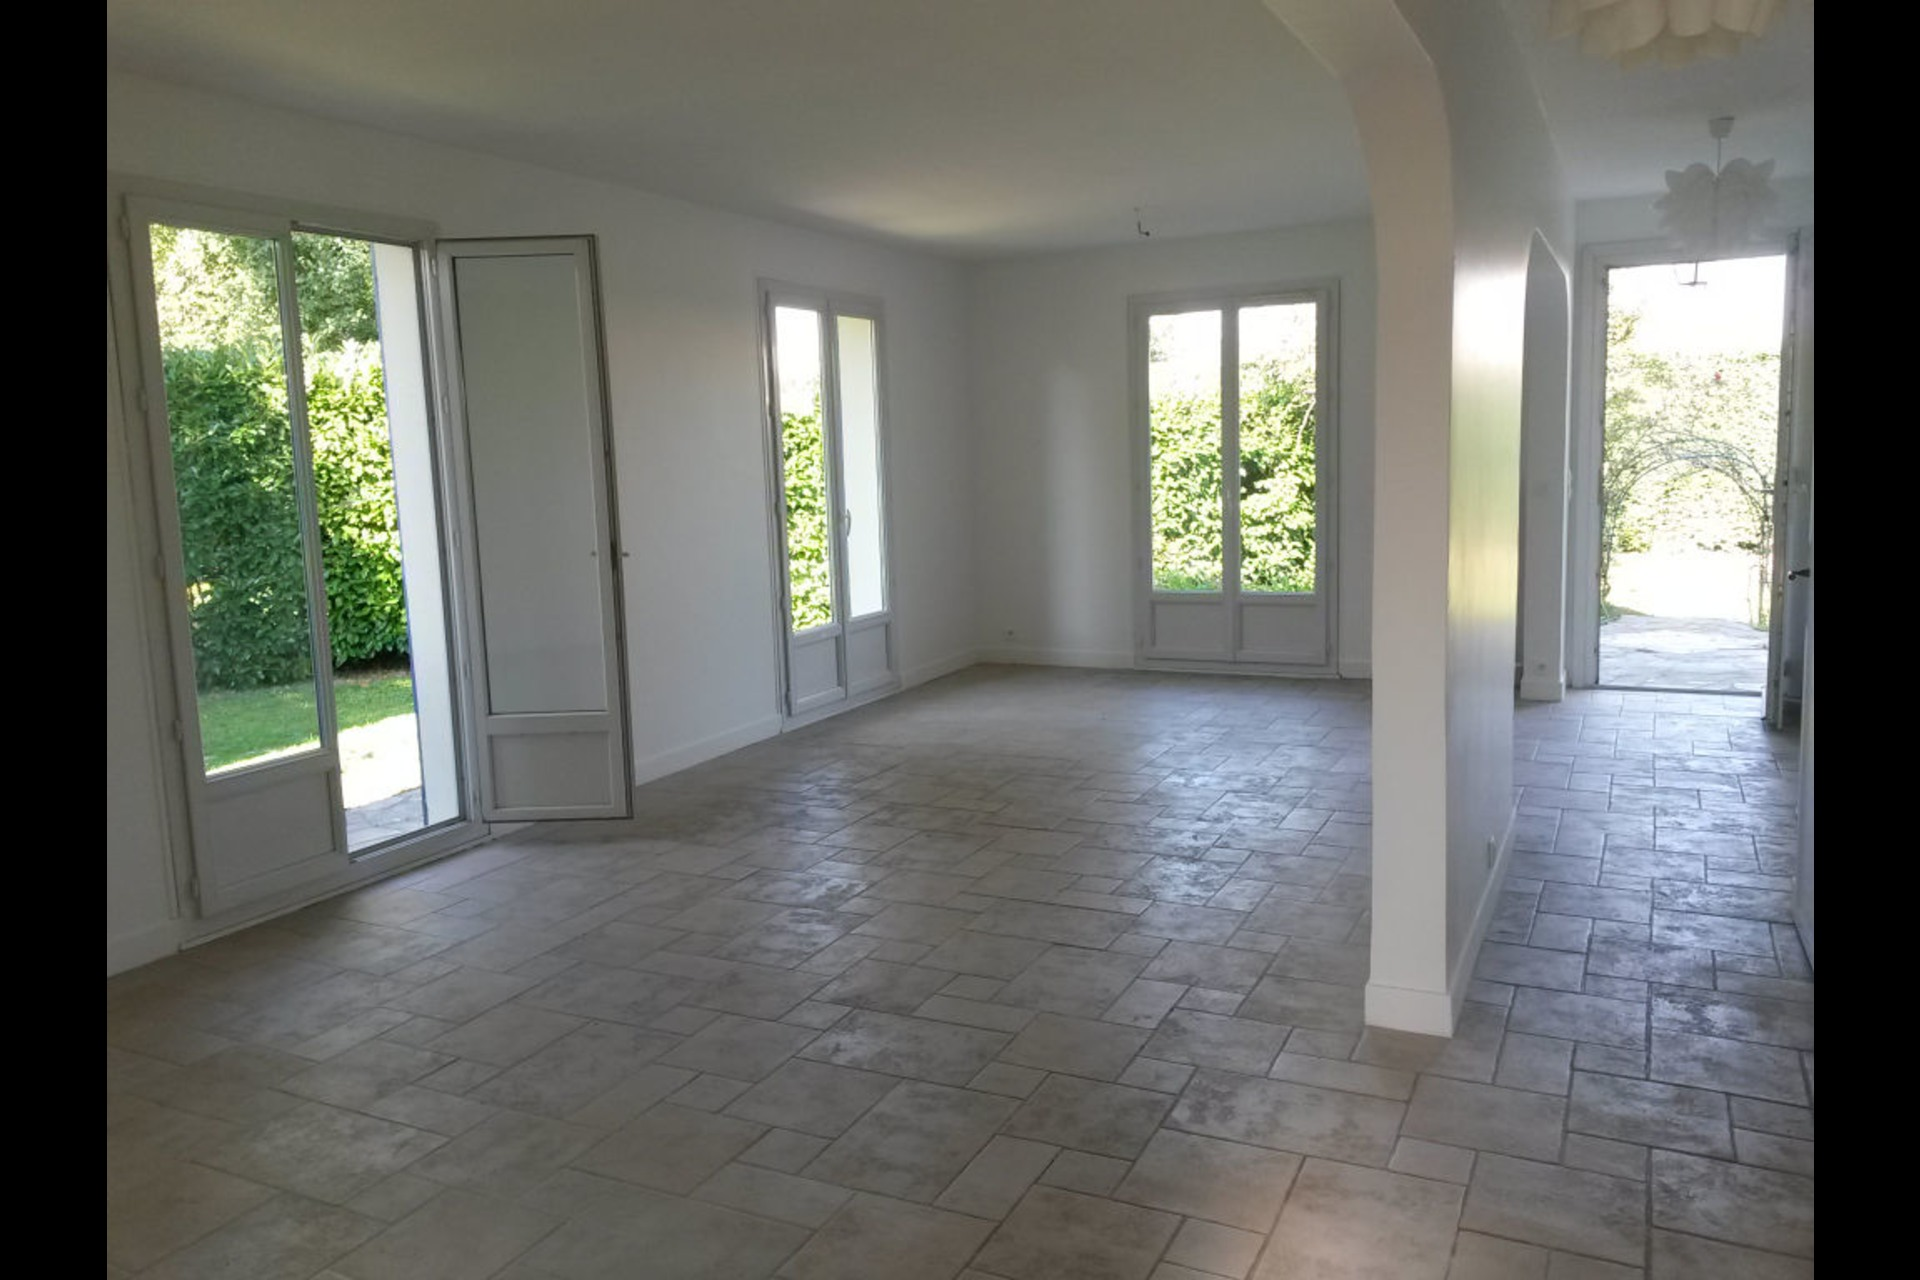 image 4 - Townhouse For sale orgeval - 6 rooms